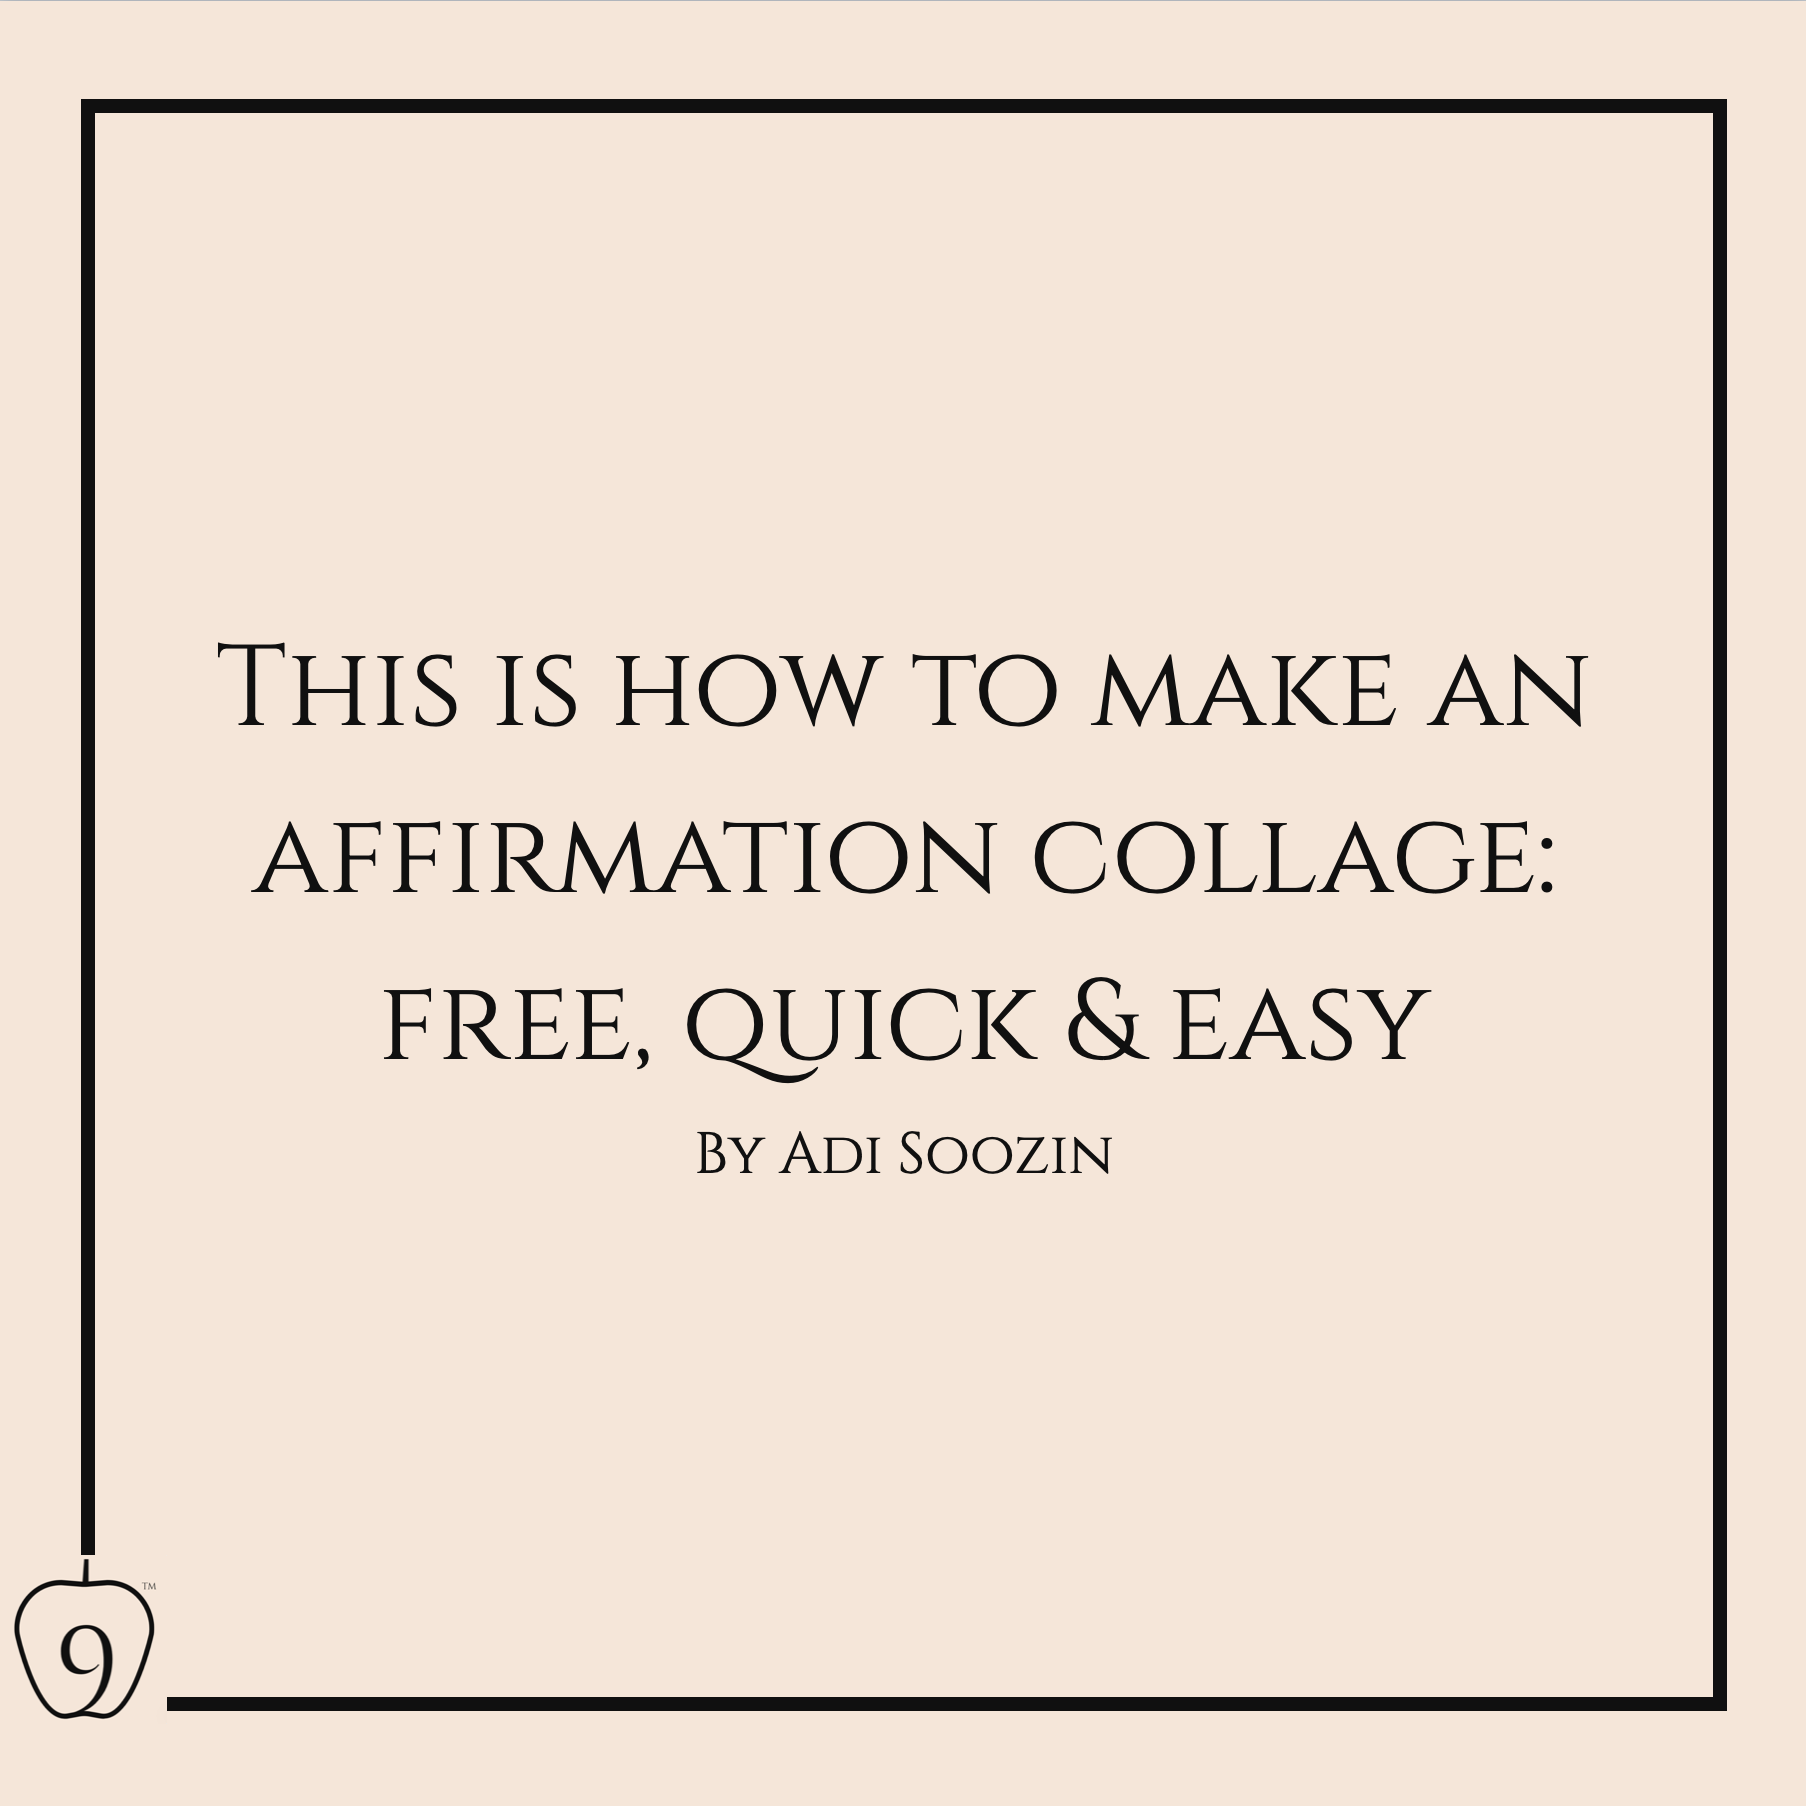 This Is How To Make An Affirmation Collage: Free, Quick & Easy